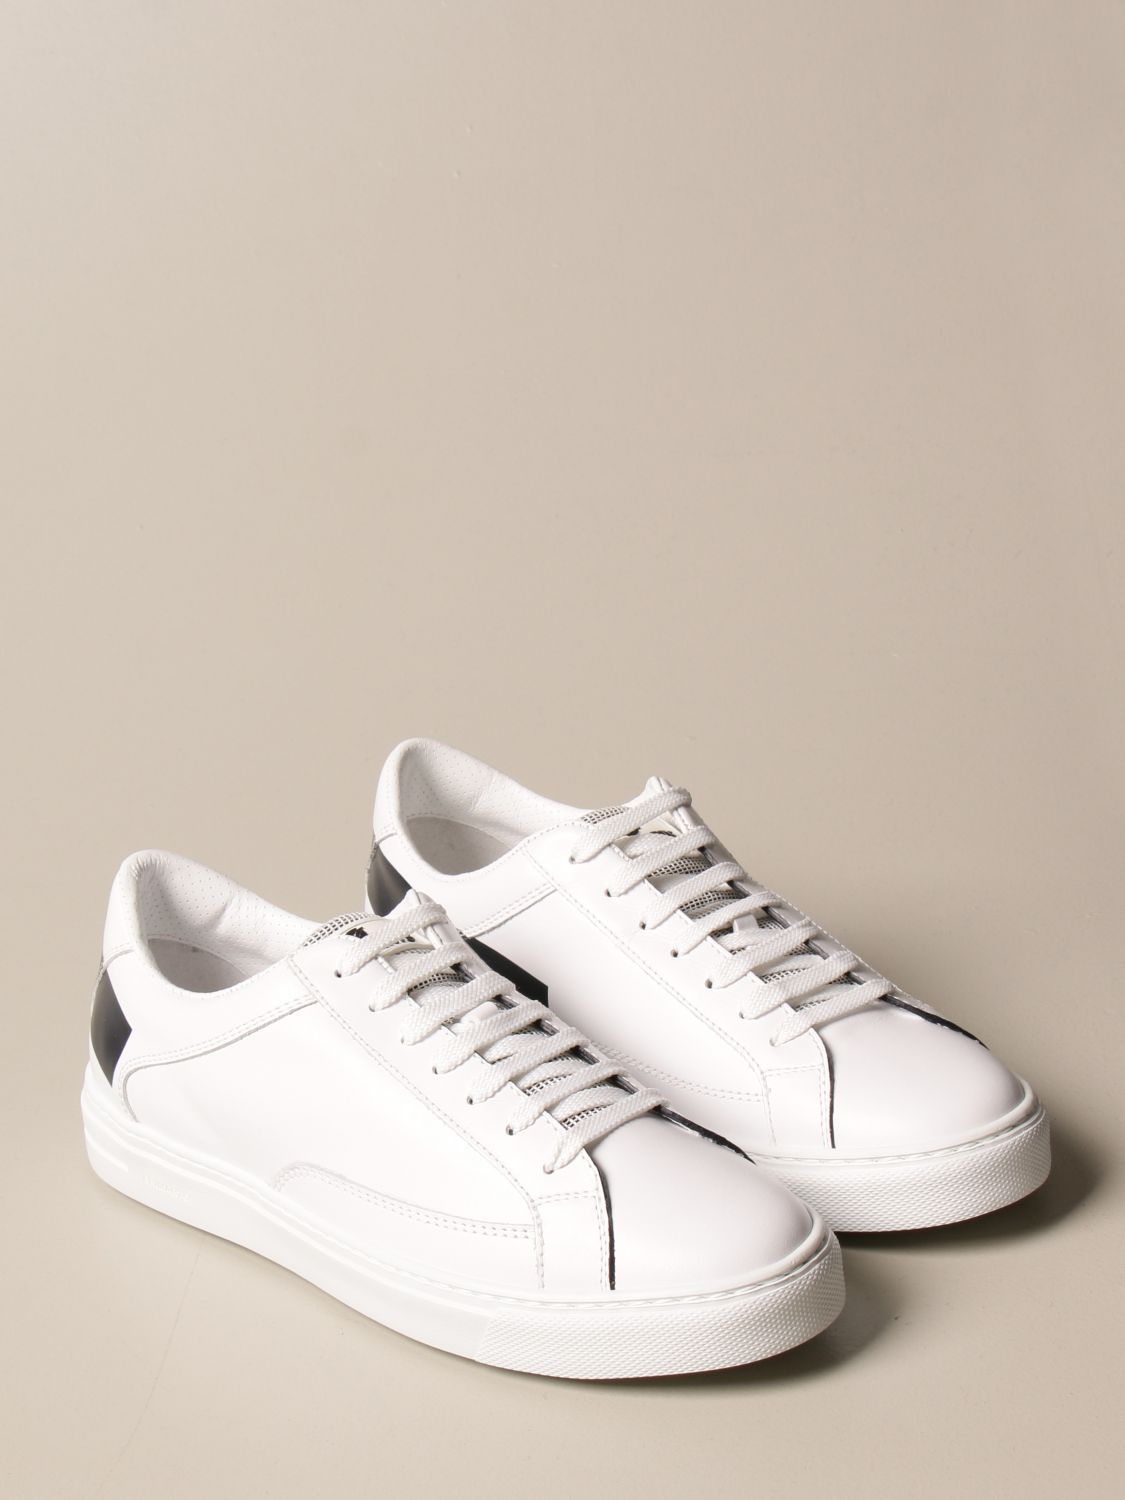 Trainers Brimarts: Shoes men Brimarts white 2